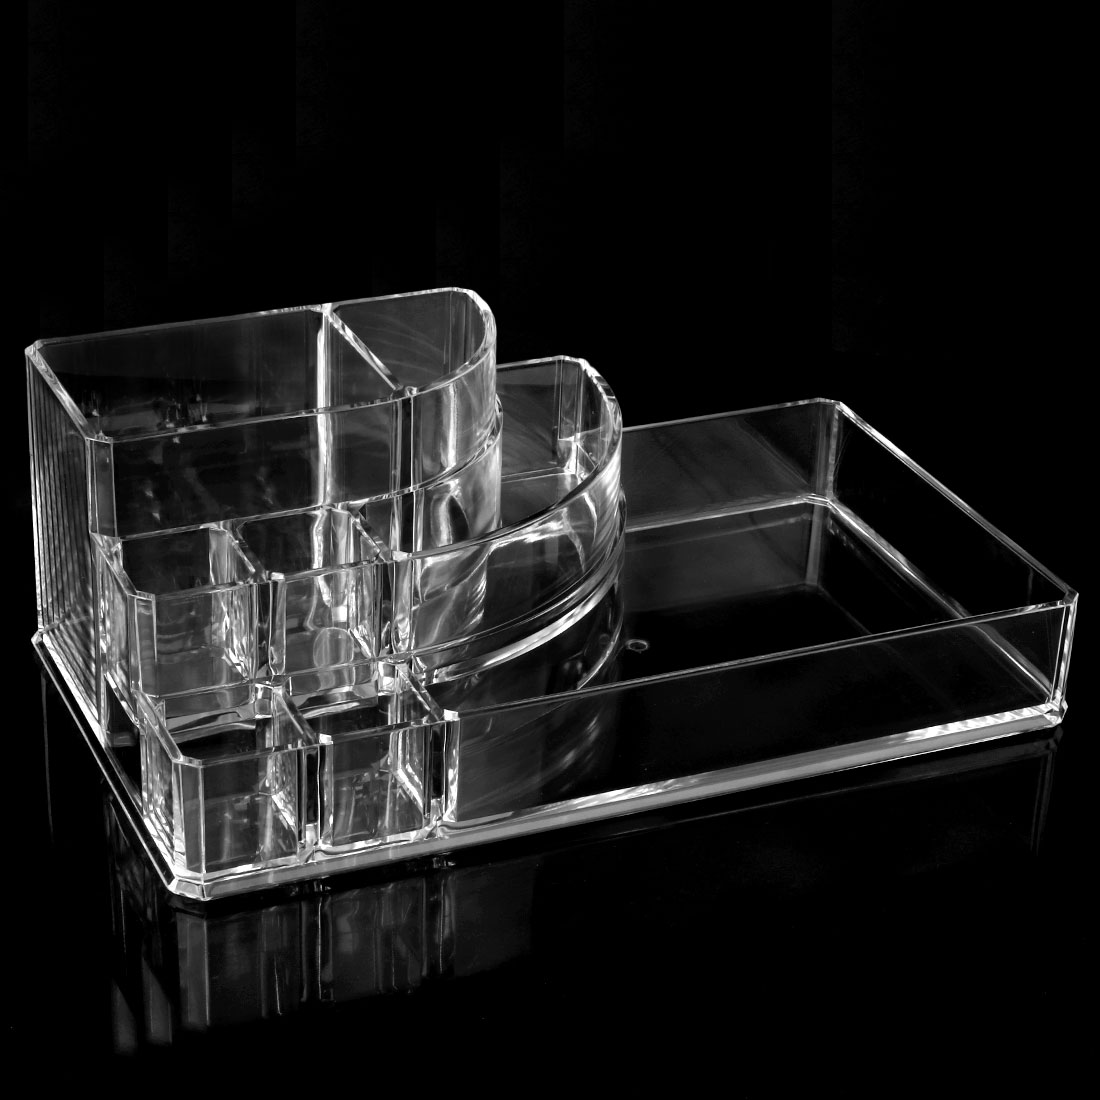 Unique Bargains Large Clear Acrylic Cosmetic & Makeup Palette Organizer Drawers Brush Holder Case Display Box